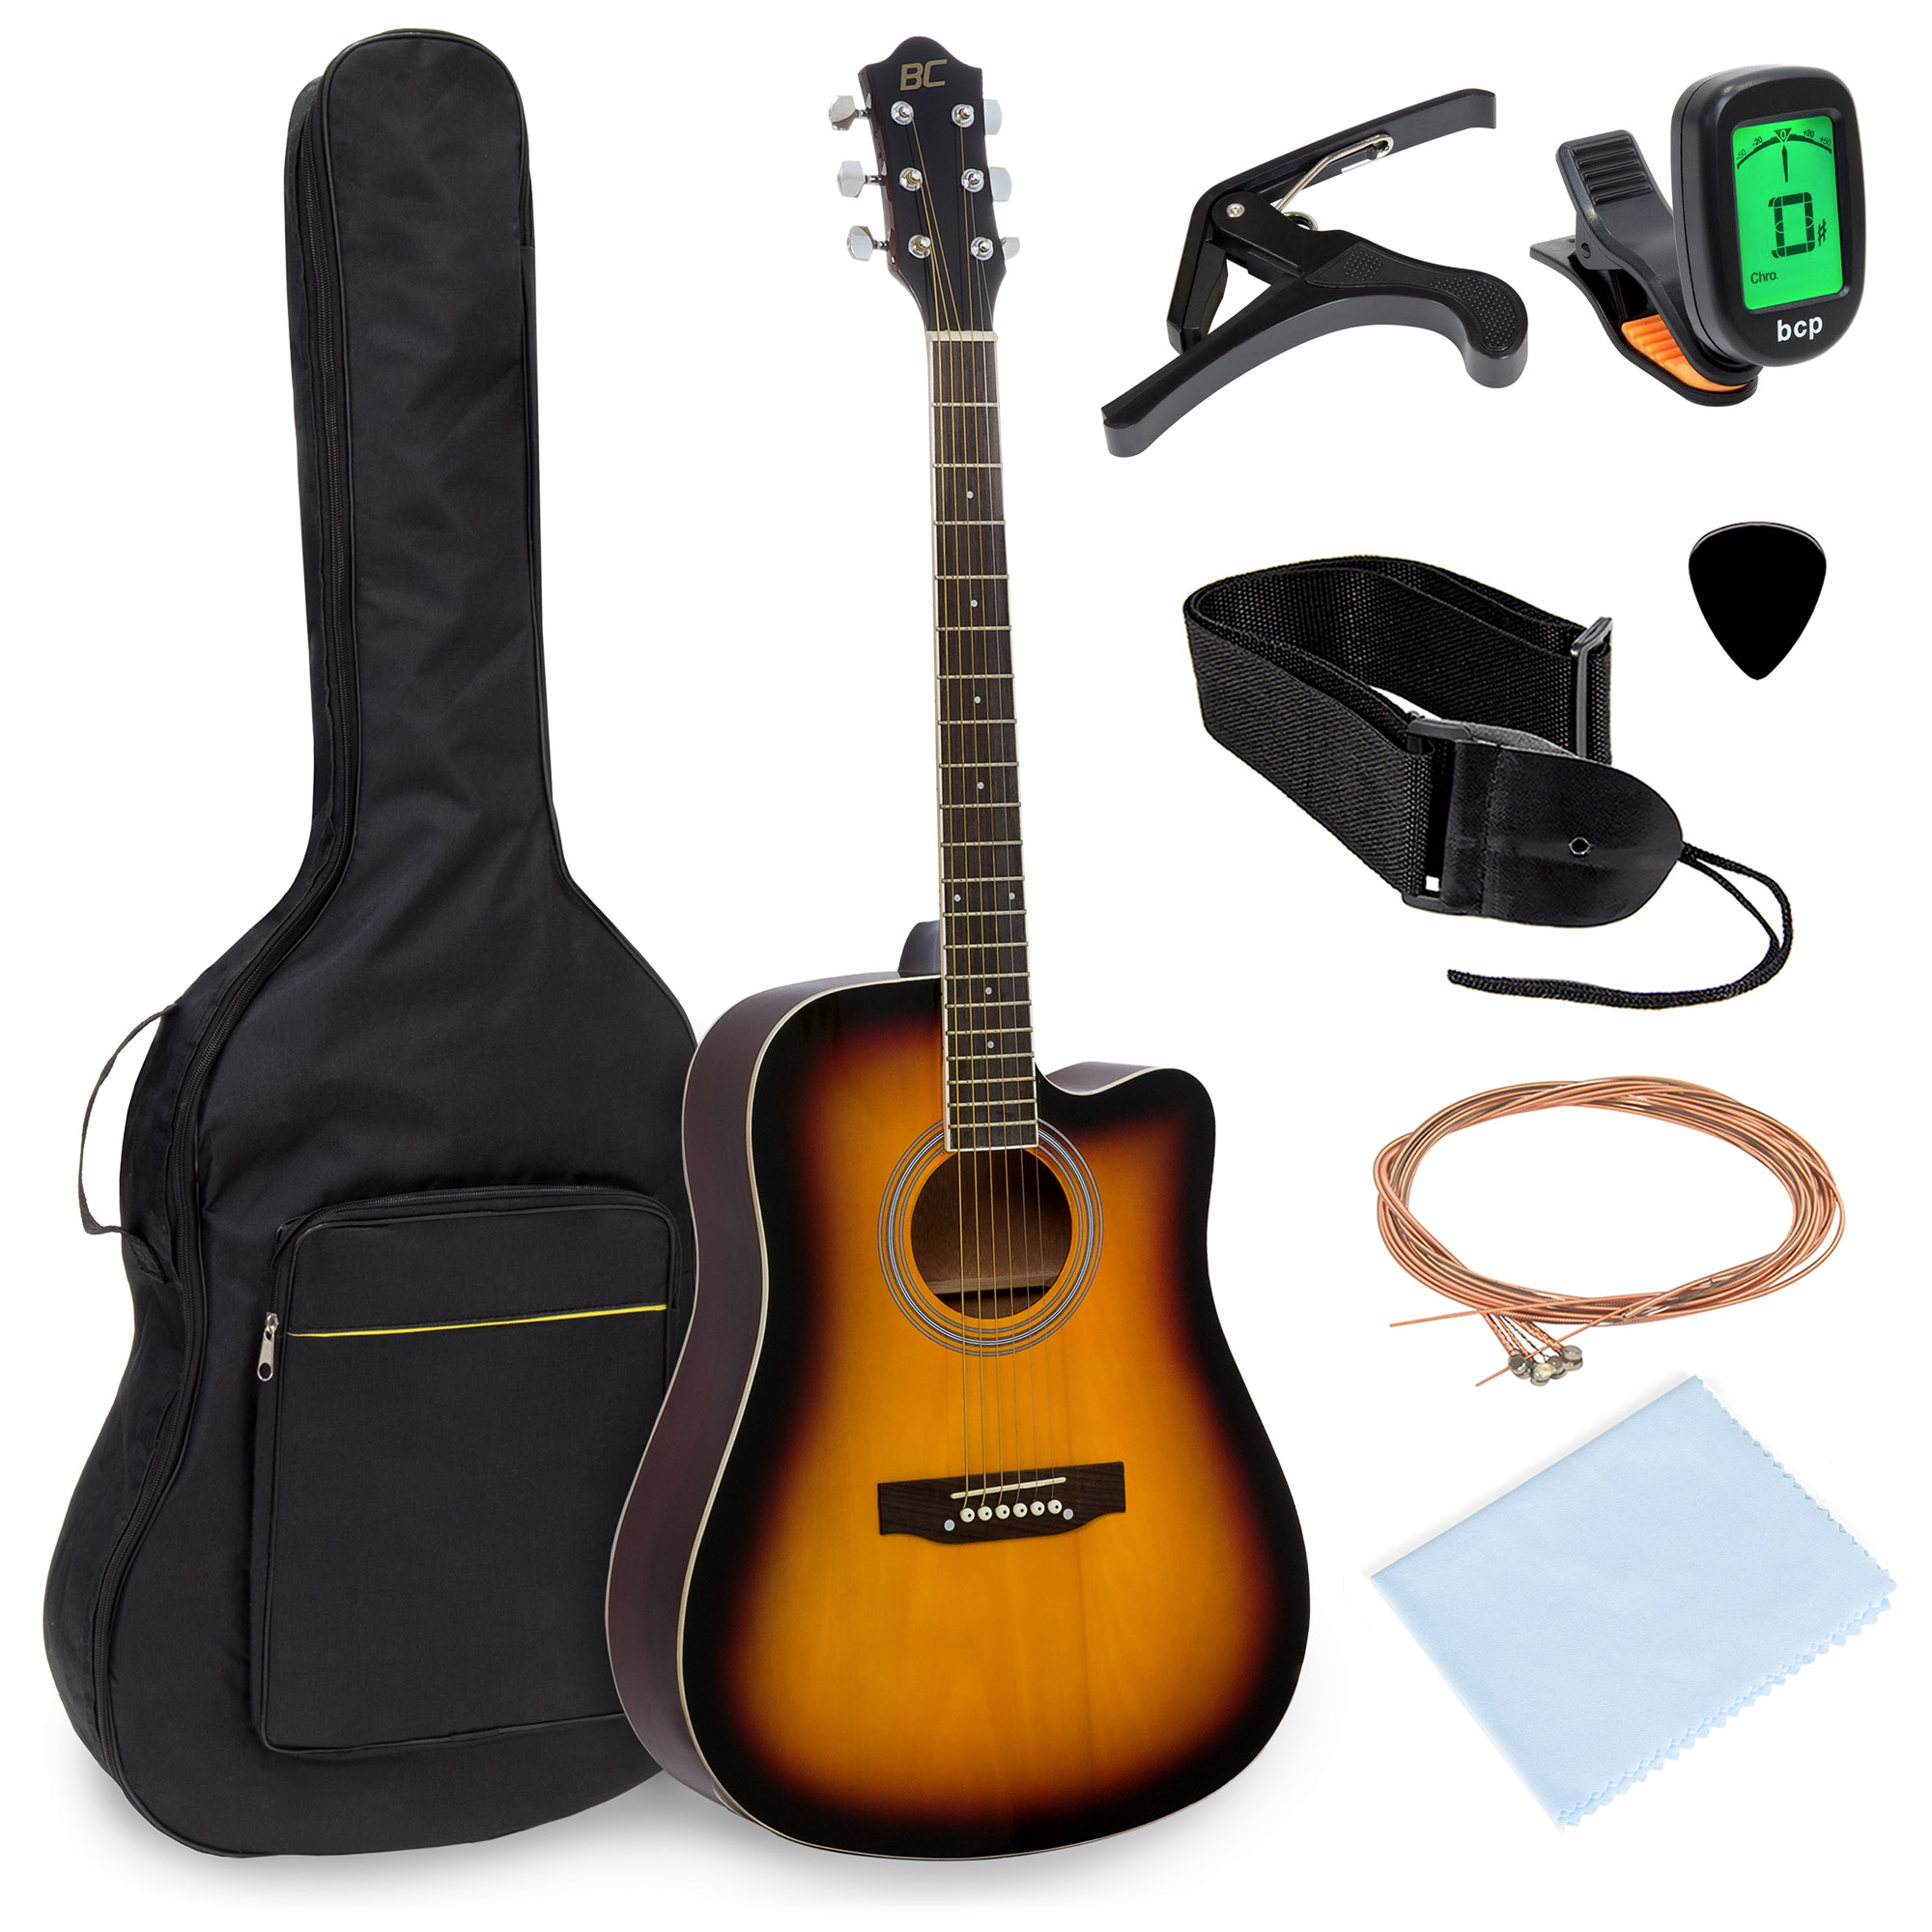 Best Choice Products 41in Full Size Beginner Acoustic Cutaway Guitar Kit Musical Instrument Bundle Set w/ Padded Case, Strap, Capo, Extra Strings, Digital Tuner, Polishing Cloth, 4 Picks - Sunburst